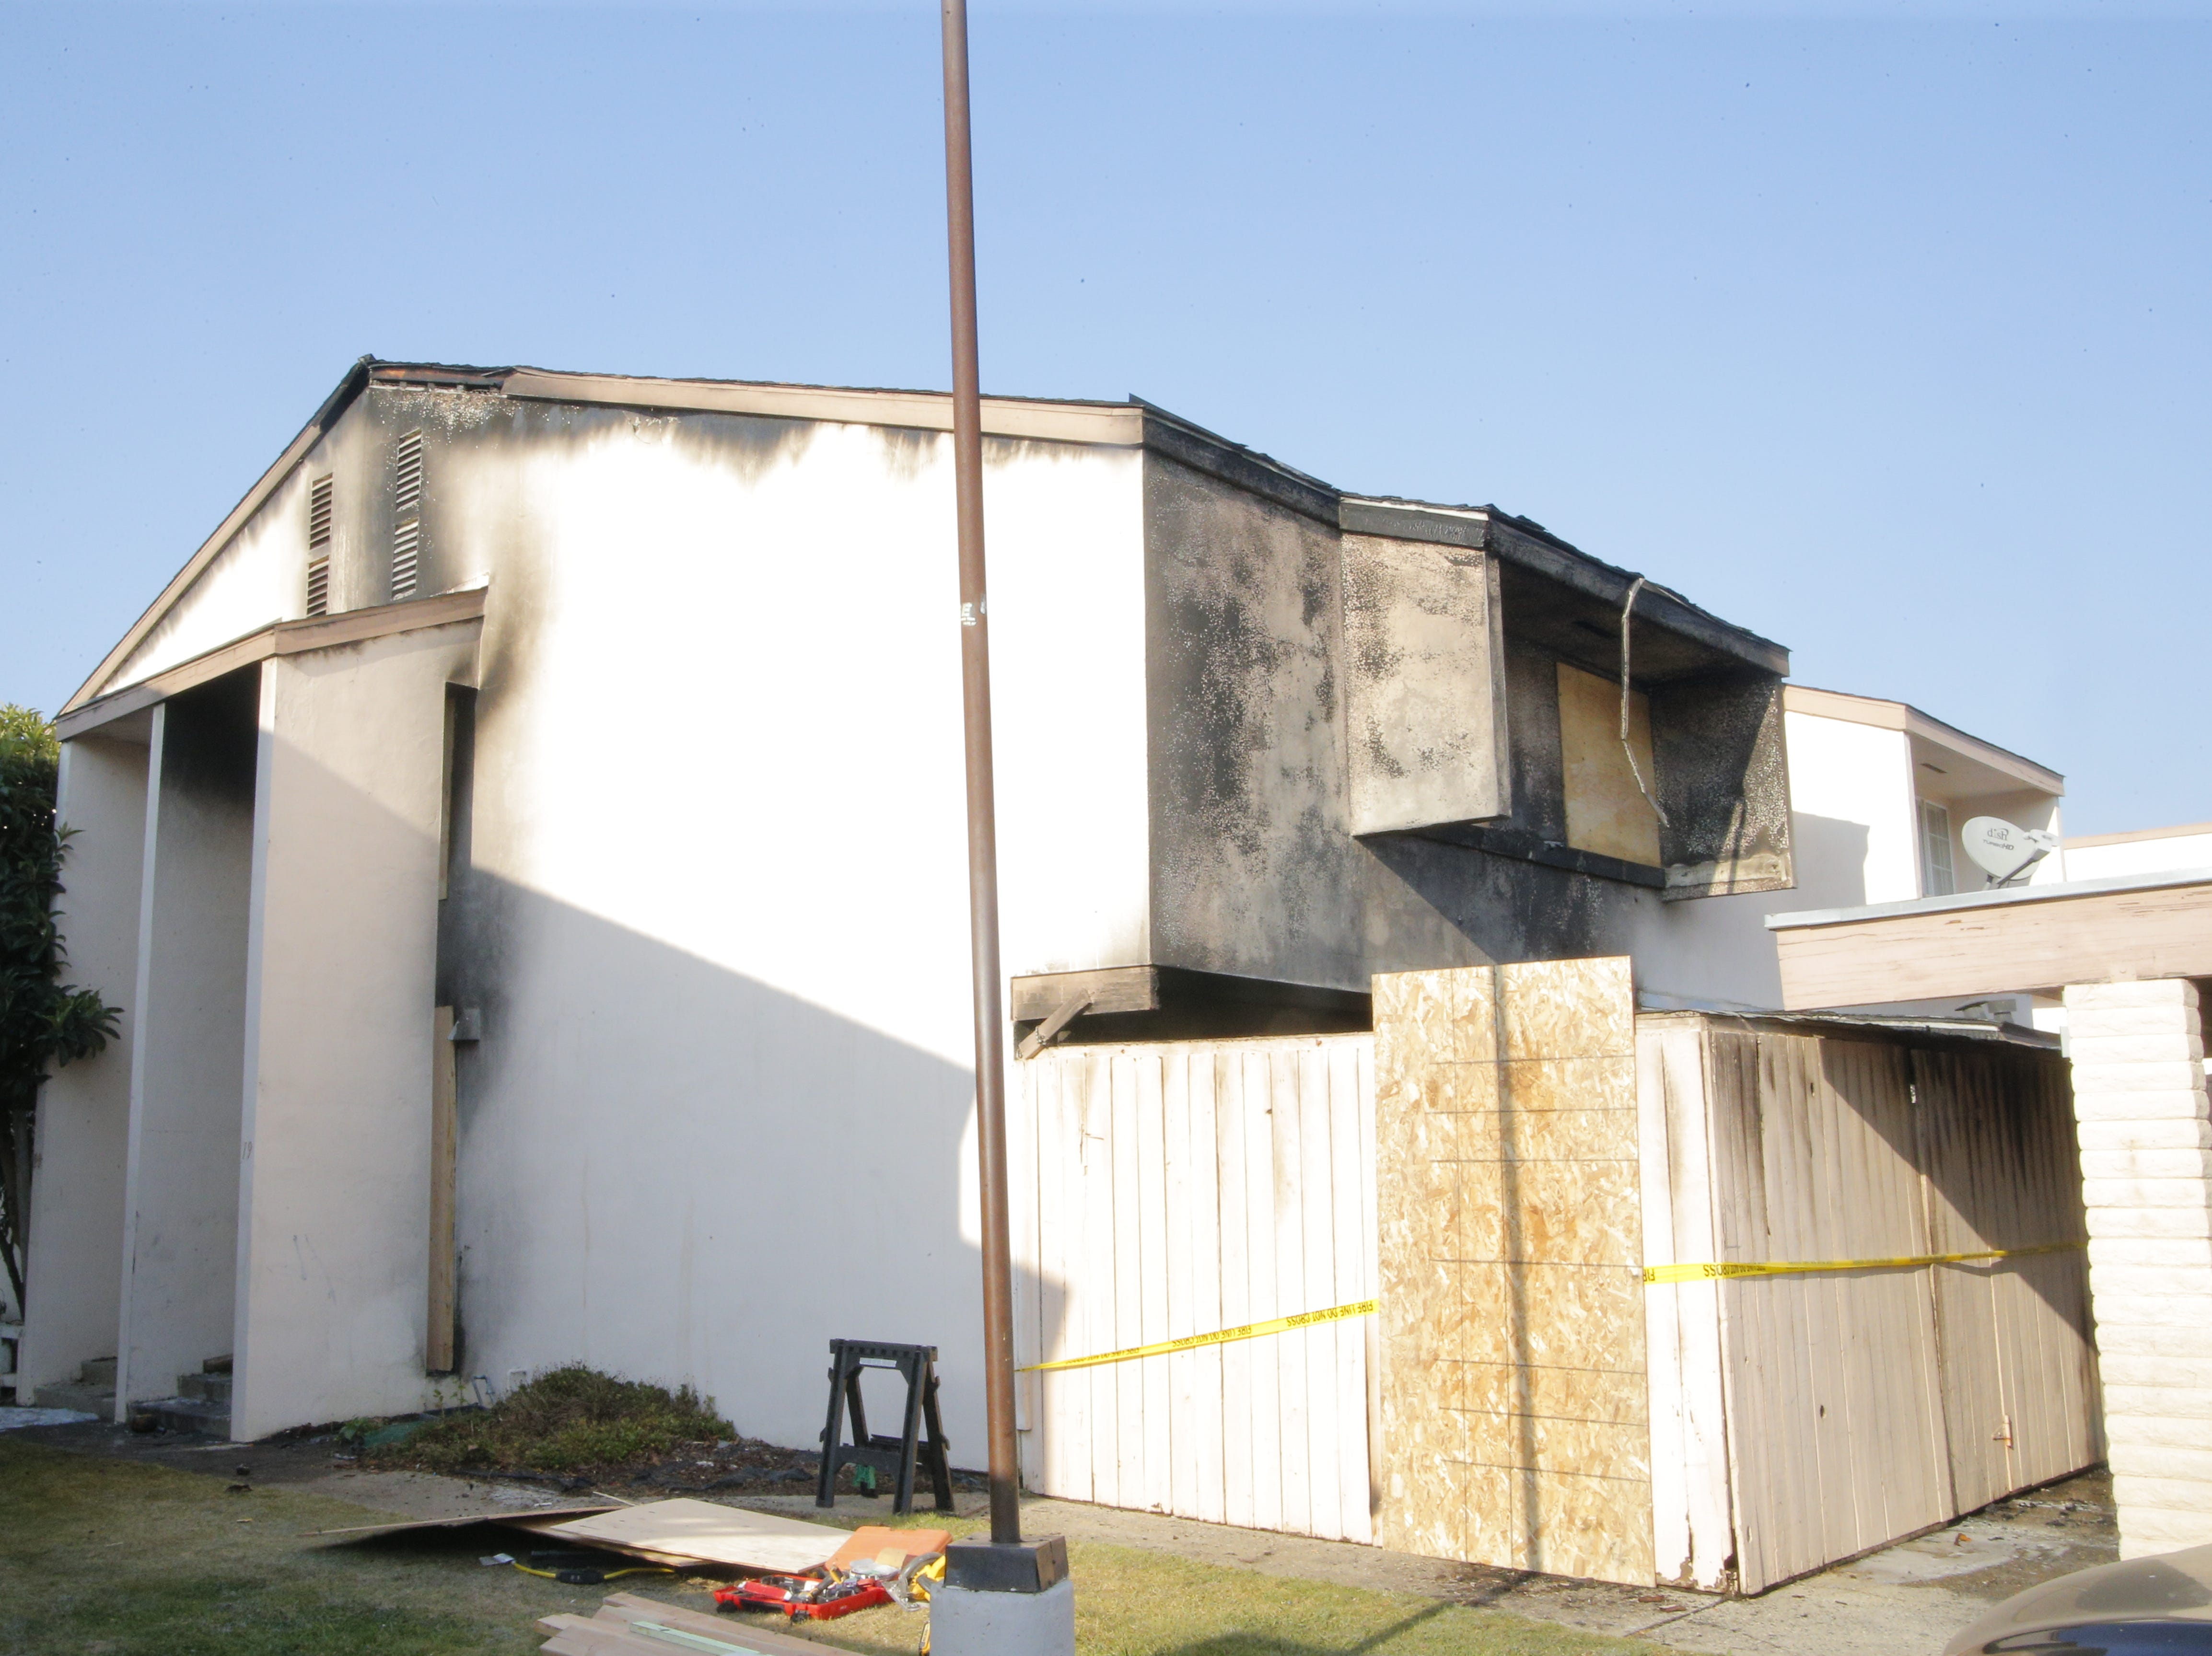 A fire tore through a two-story home in the 900 block of Acosta Plaza Monday morning.